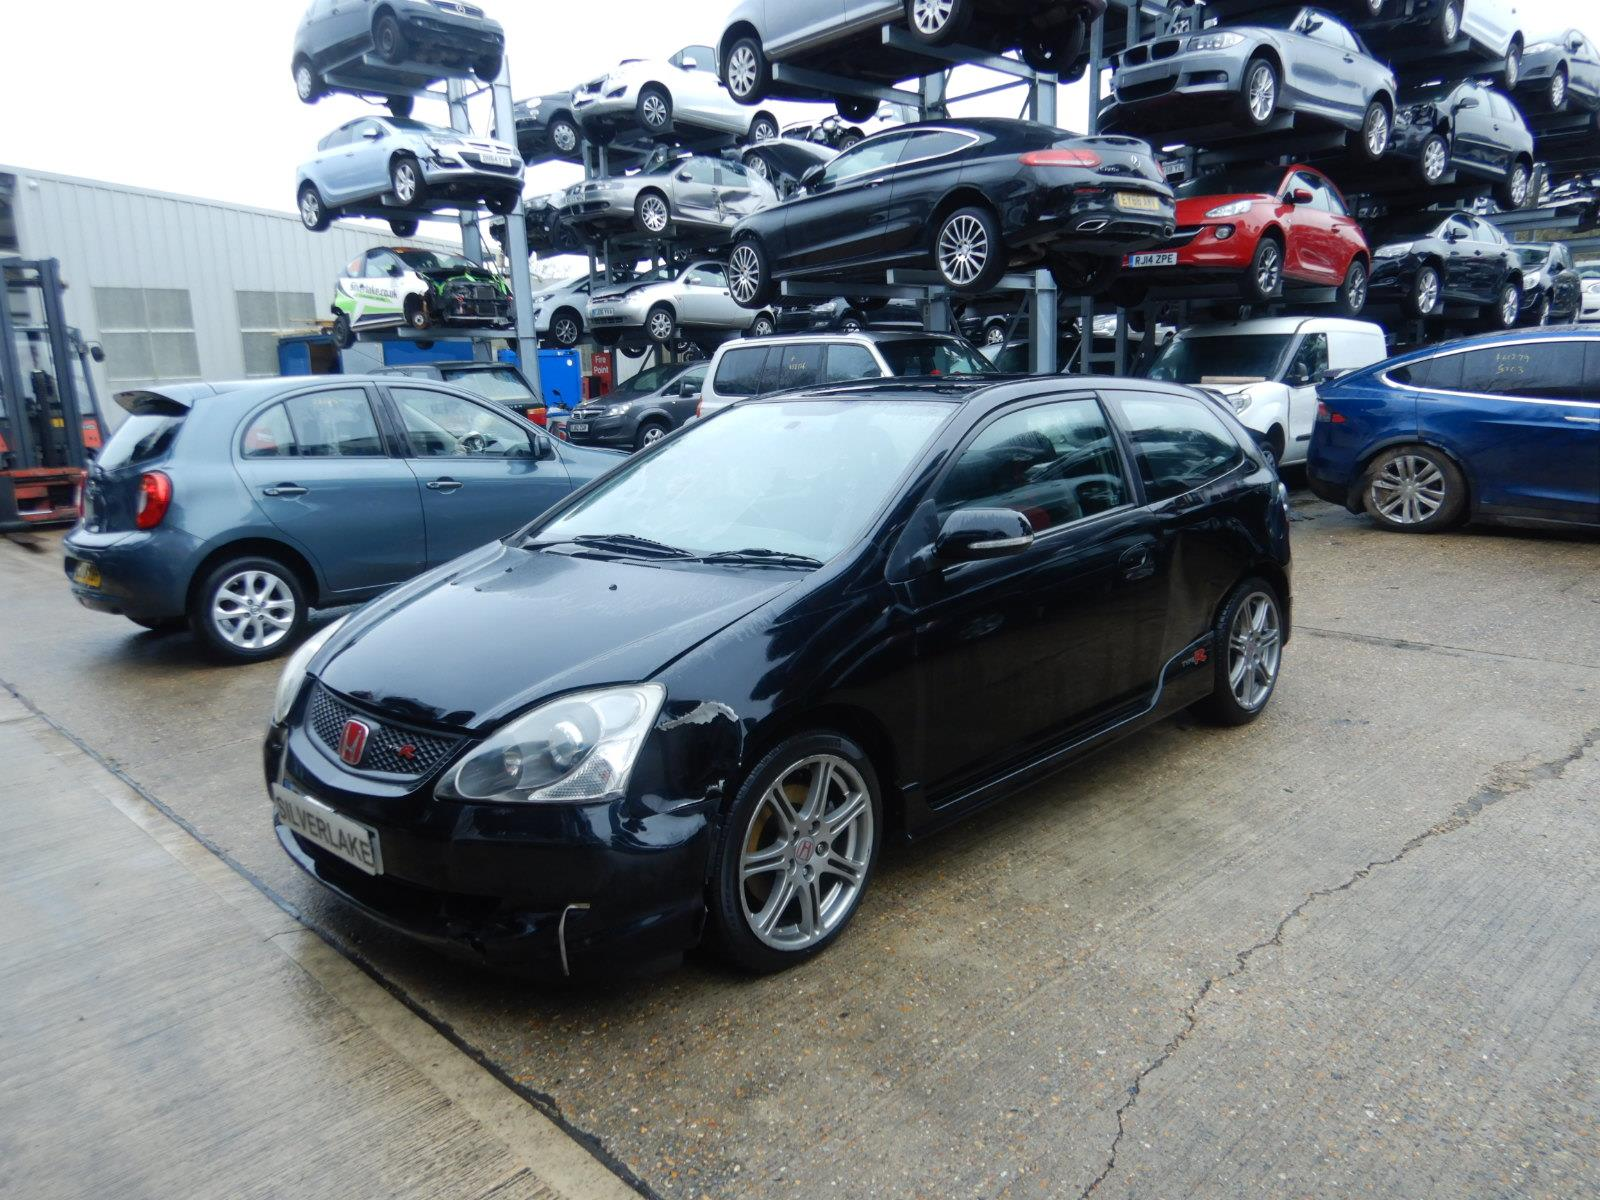 Honda Civic 2001 To 2004 Type R 3 Door Hatchback